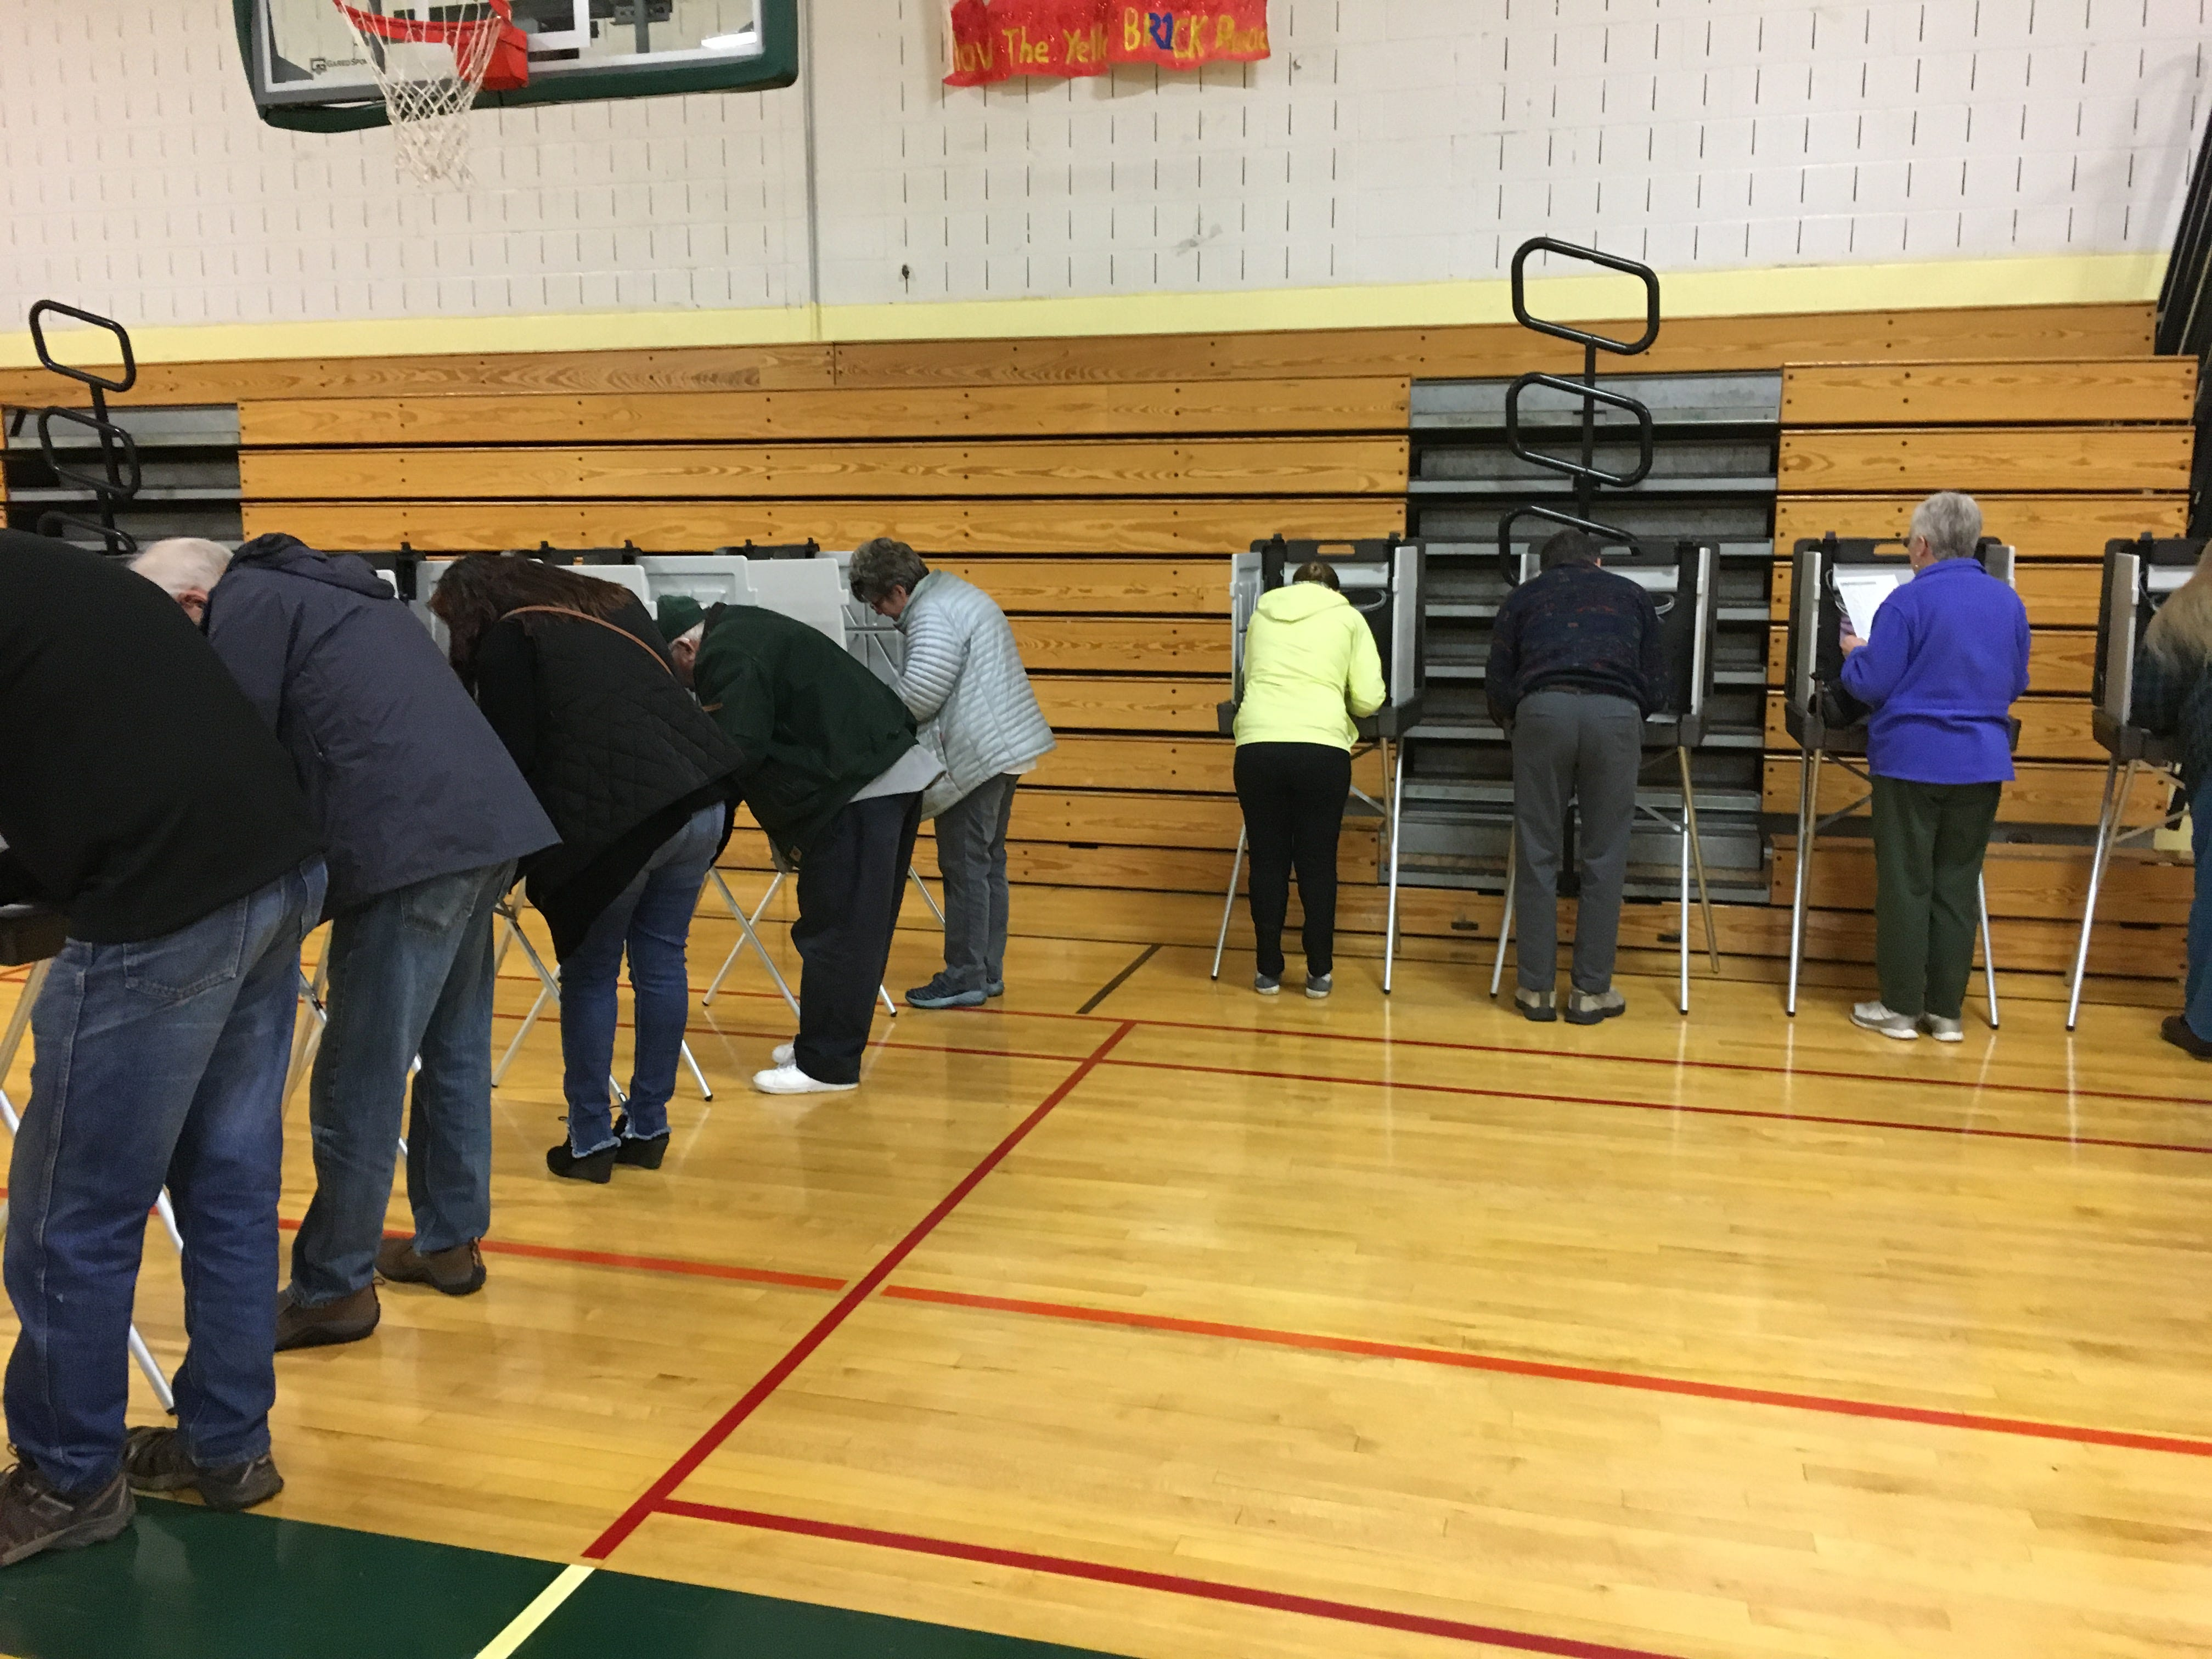 Residents cast their ballot at the polling location at Colchester High School in Colchester, Vermont, on Tuesday, Nov. 6, 2018.